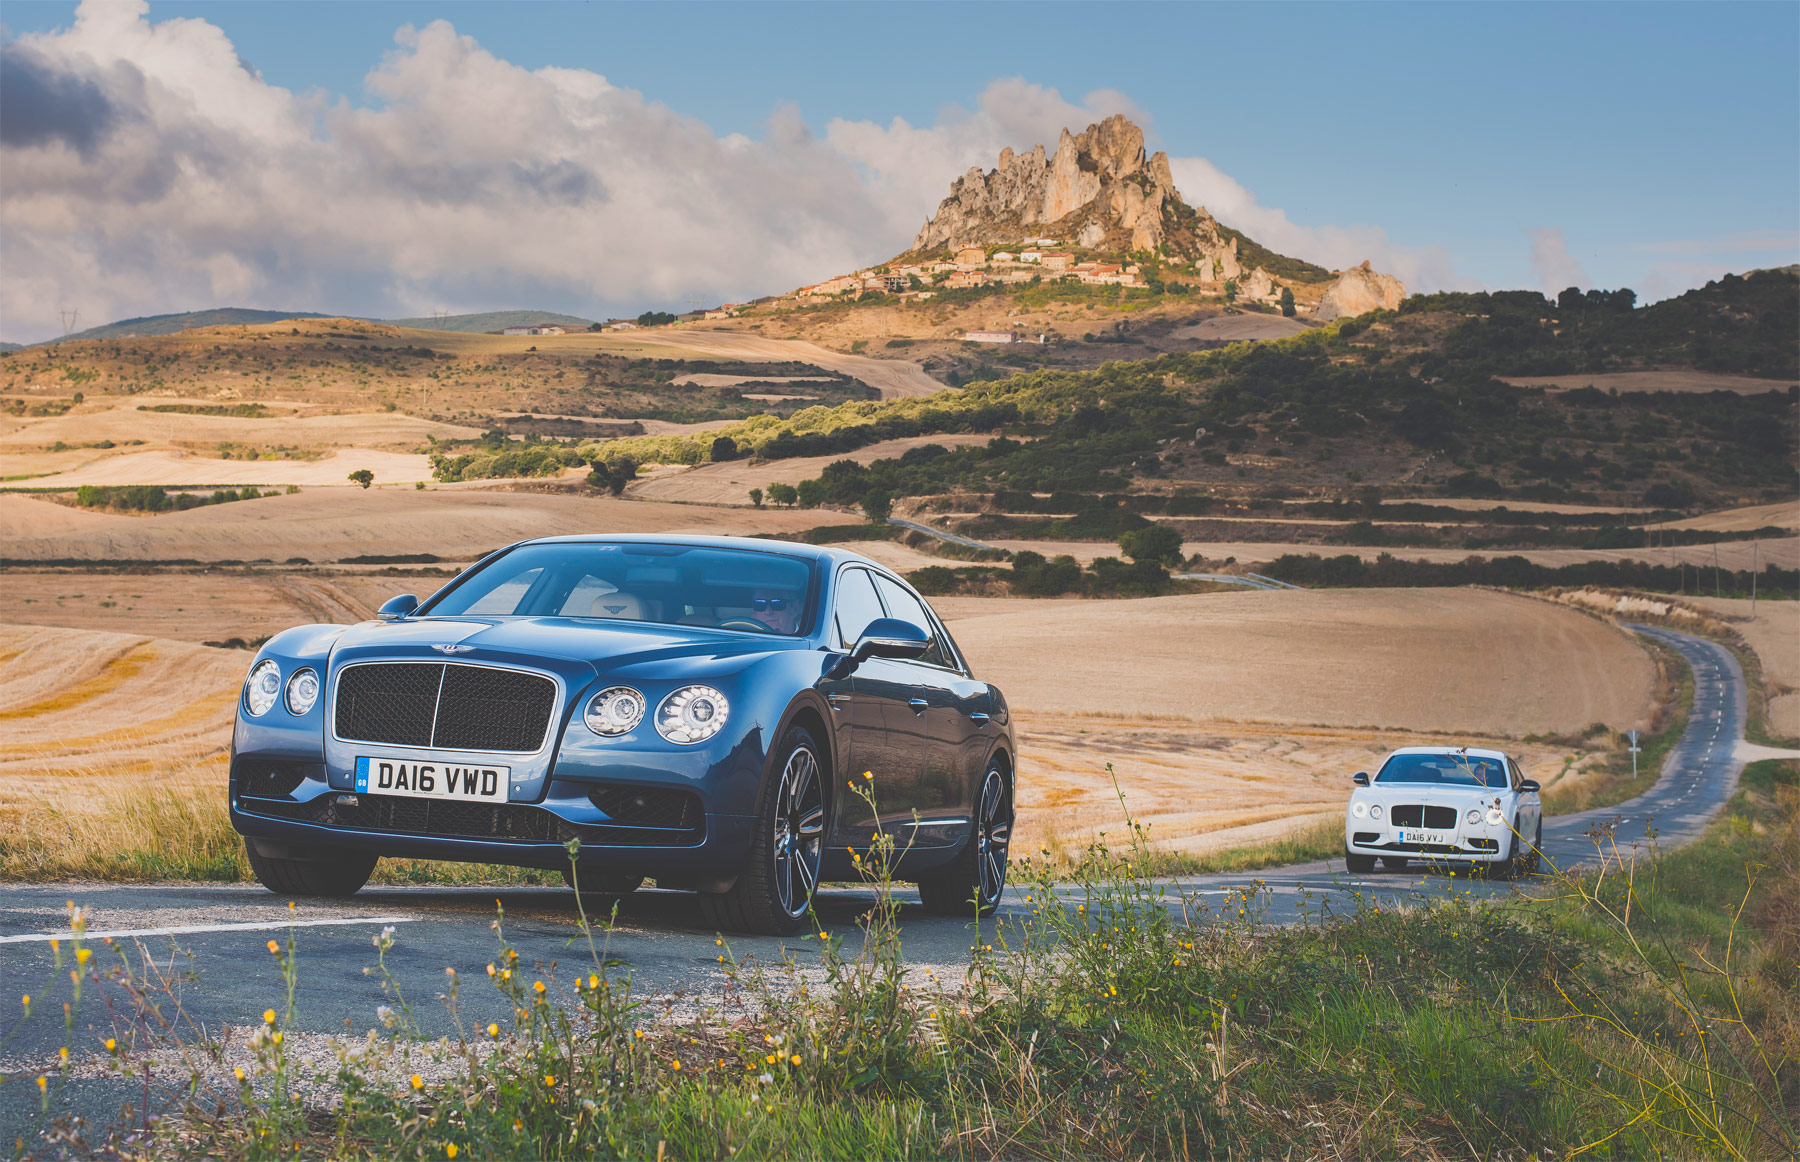 BENTLEY FLYING SPUR V8 S Test Drive in Spain